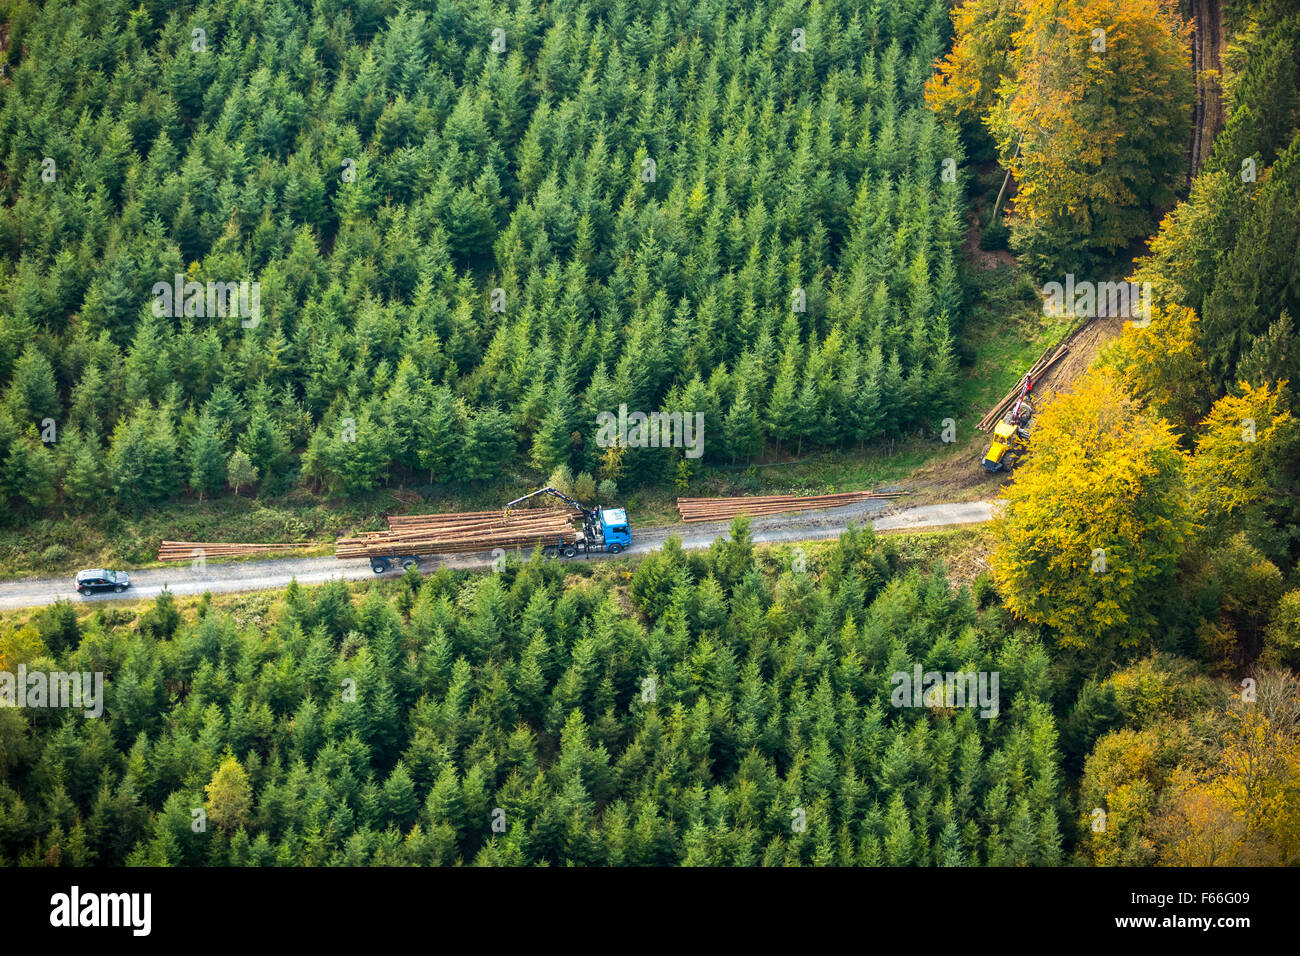 Forest workers, tree felling and forestry Mescheder Waldglas Mecke, Forest in Meschede, fall foliage, autumn forest - Stock Image